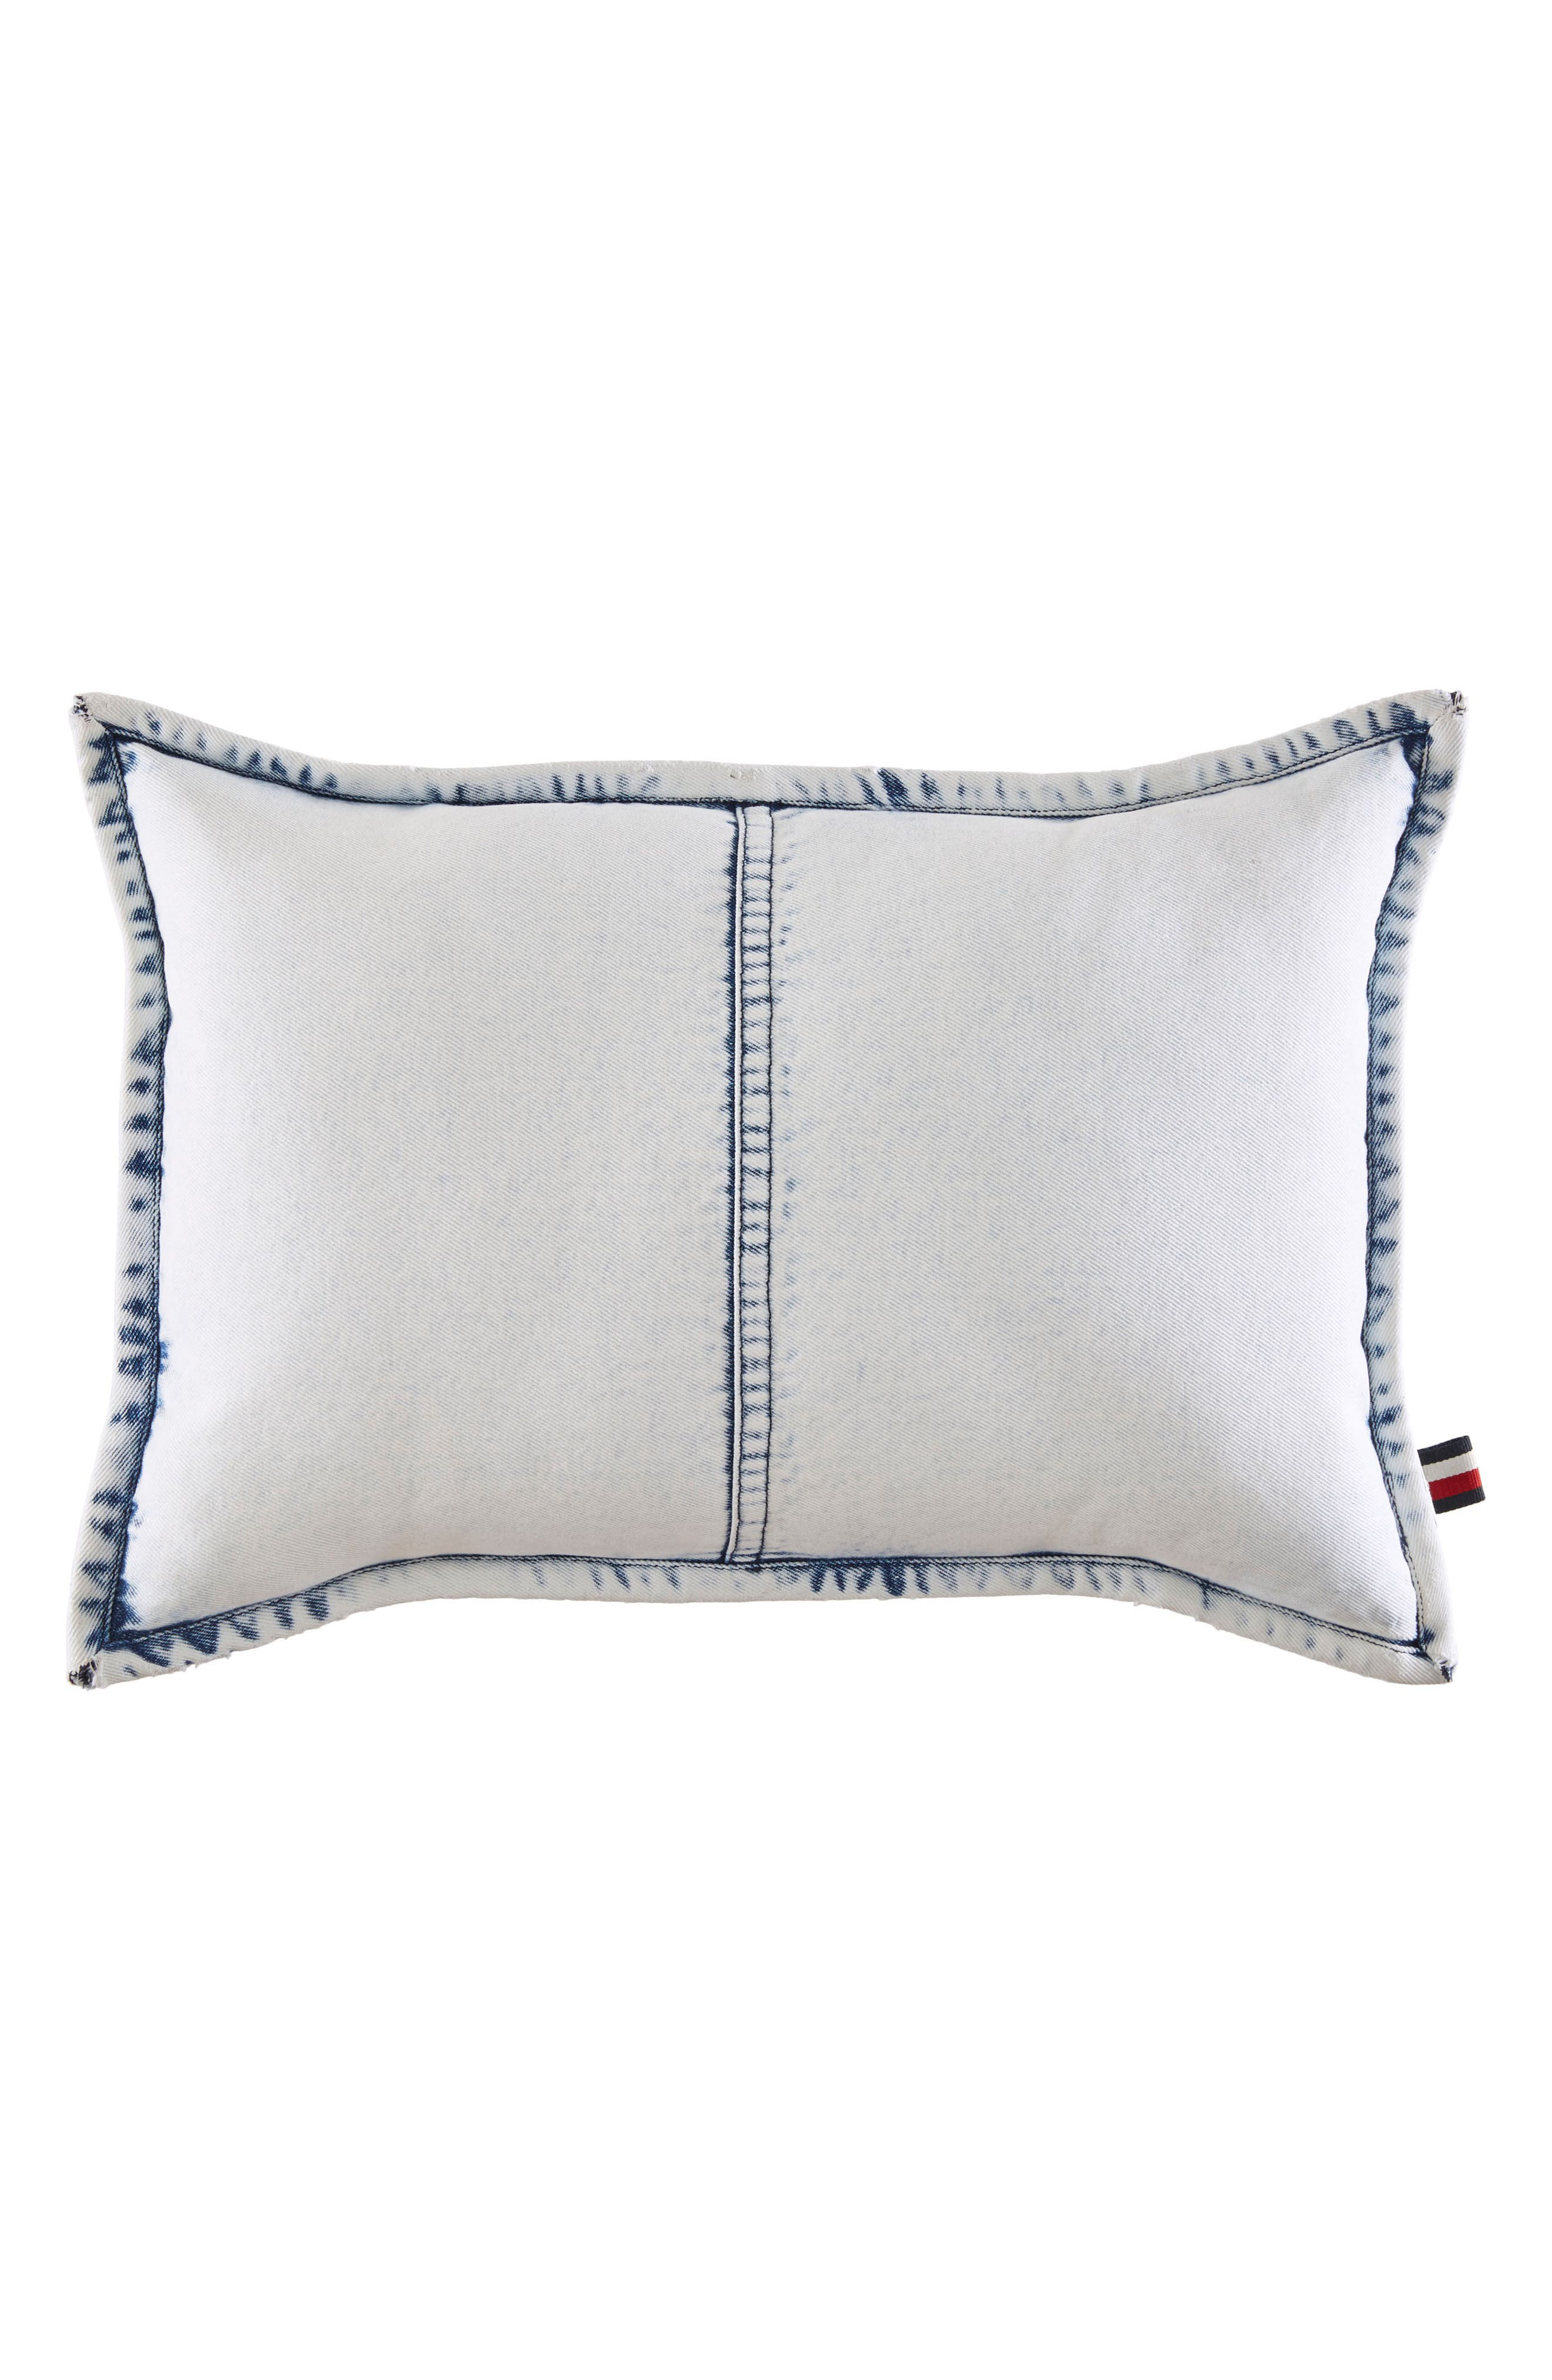 Alternate Image 1 Selected - Tommy Hilfiger Rip & Repair Accent Pillow